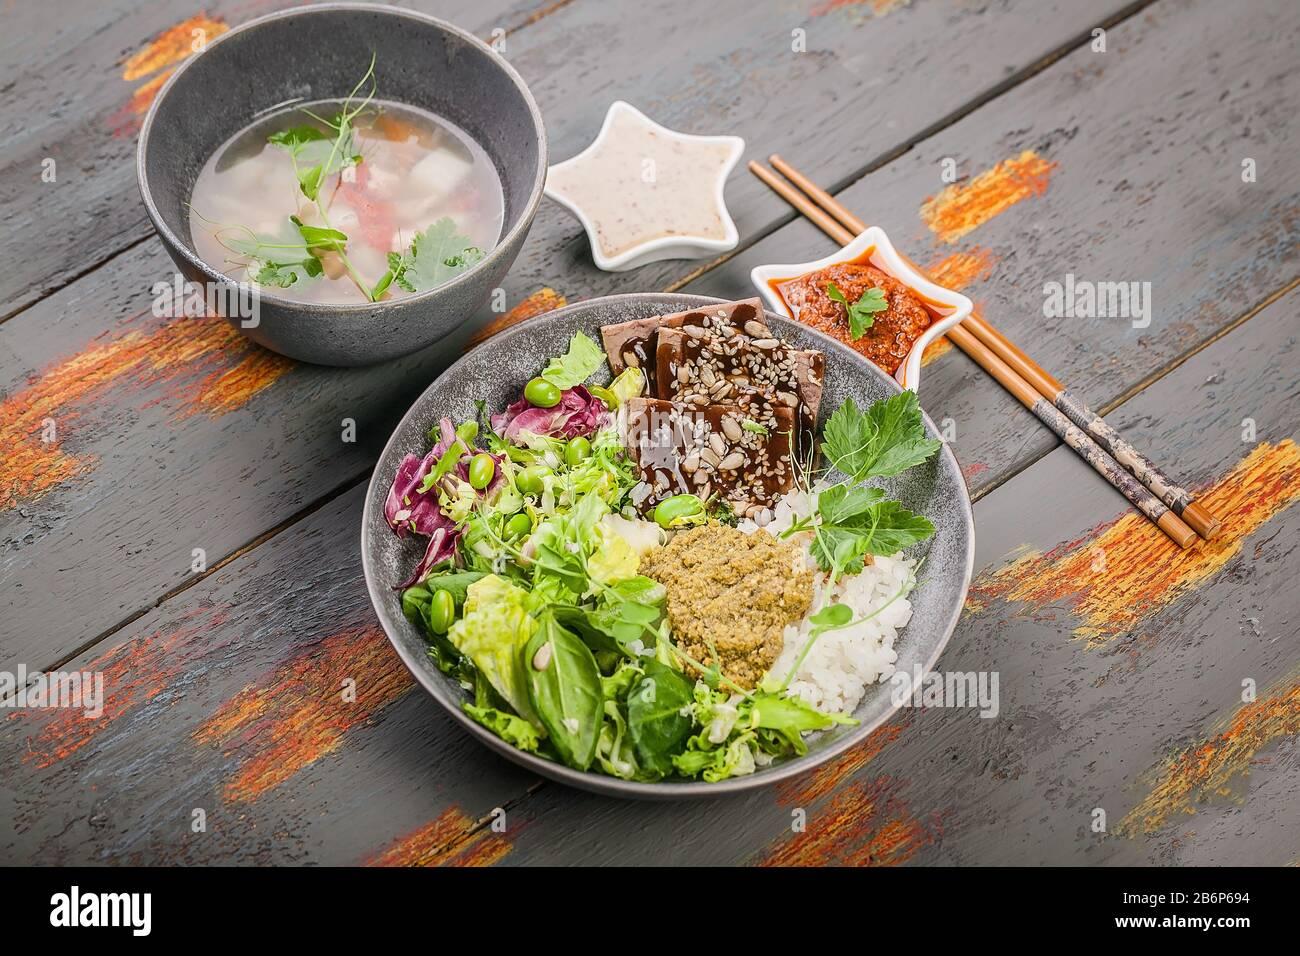 Organic Asian Healthy Food Buddha Bowl With Salmon Fish Soup Salad Rice With Pesto Spinach Leaves Green Beans Beef With Teriyaki Sauce Close Up Stock Photo Alamy